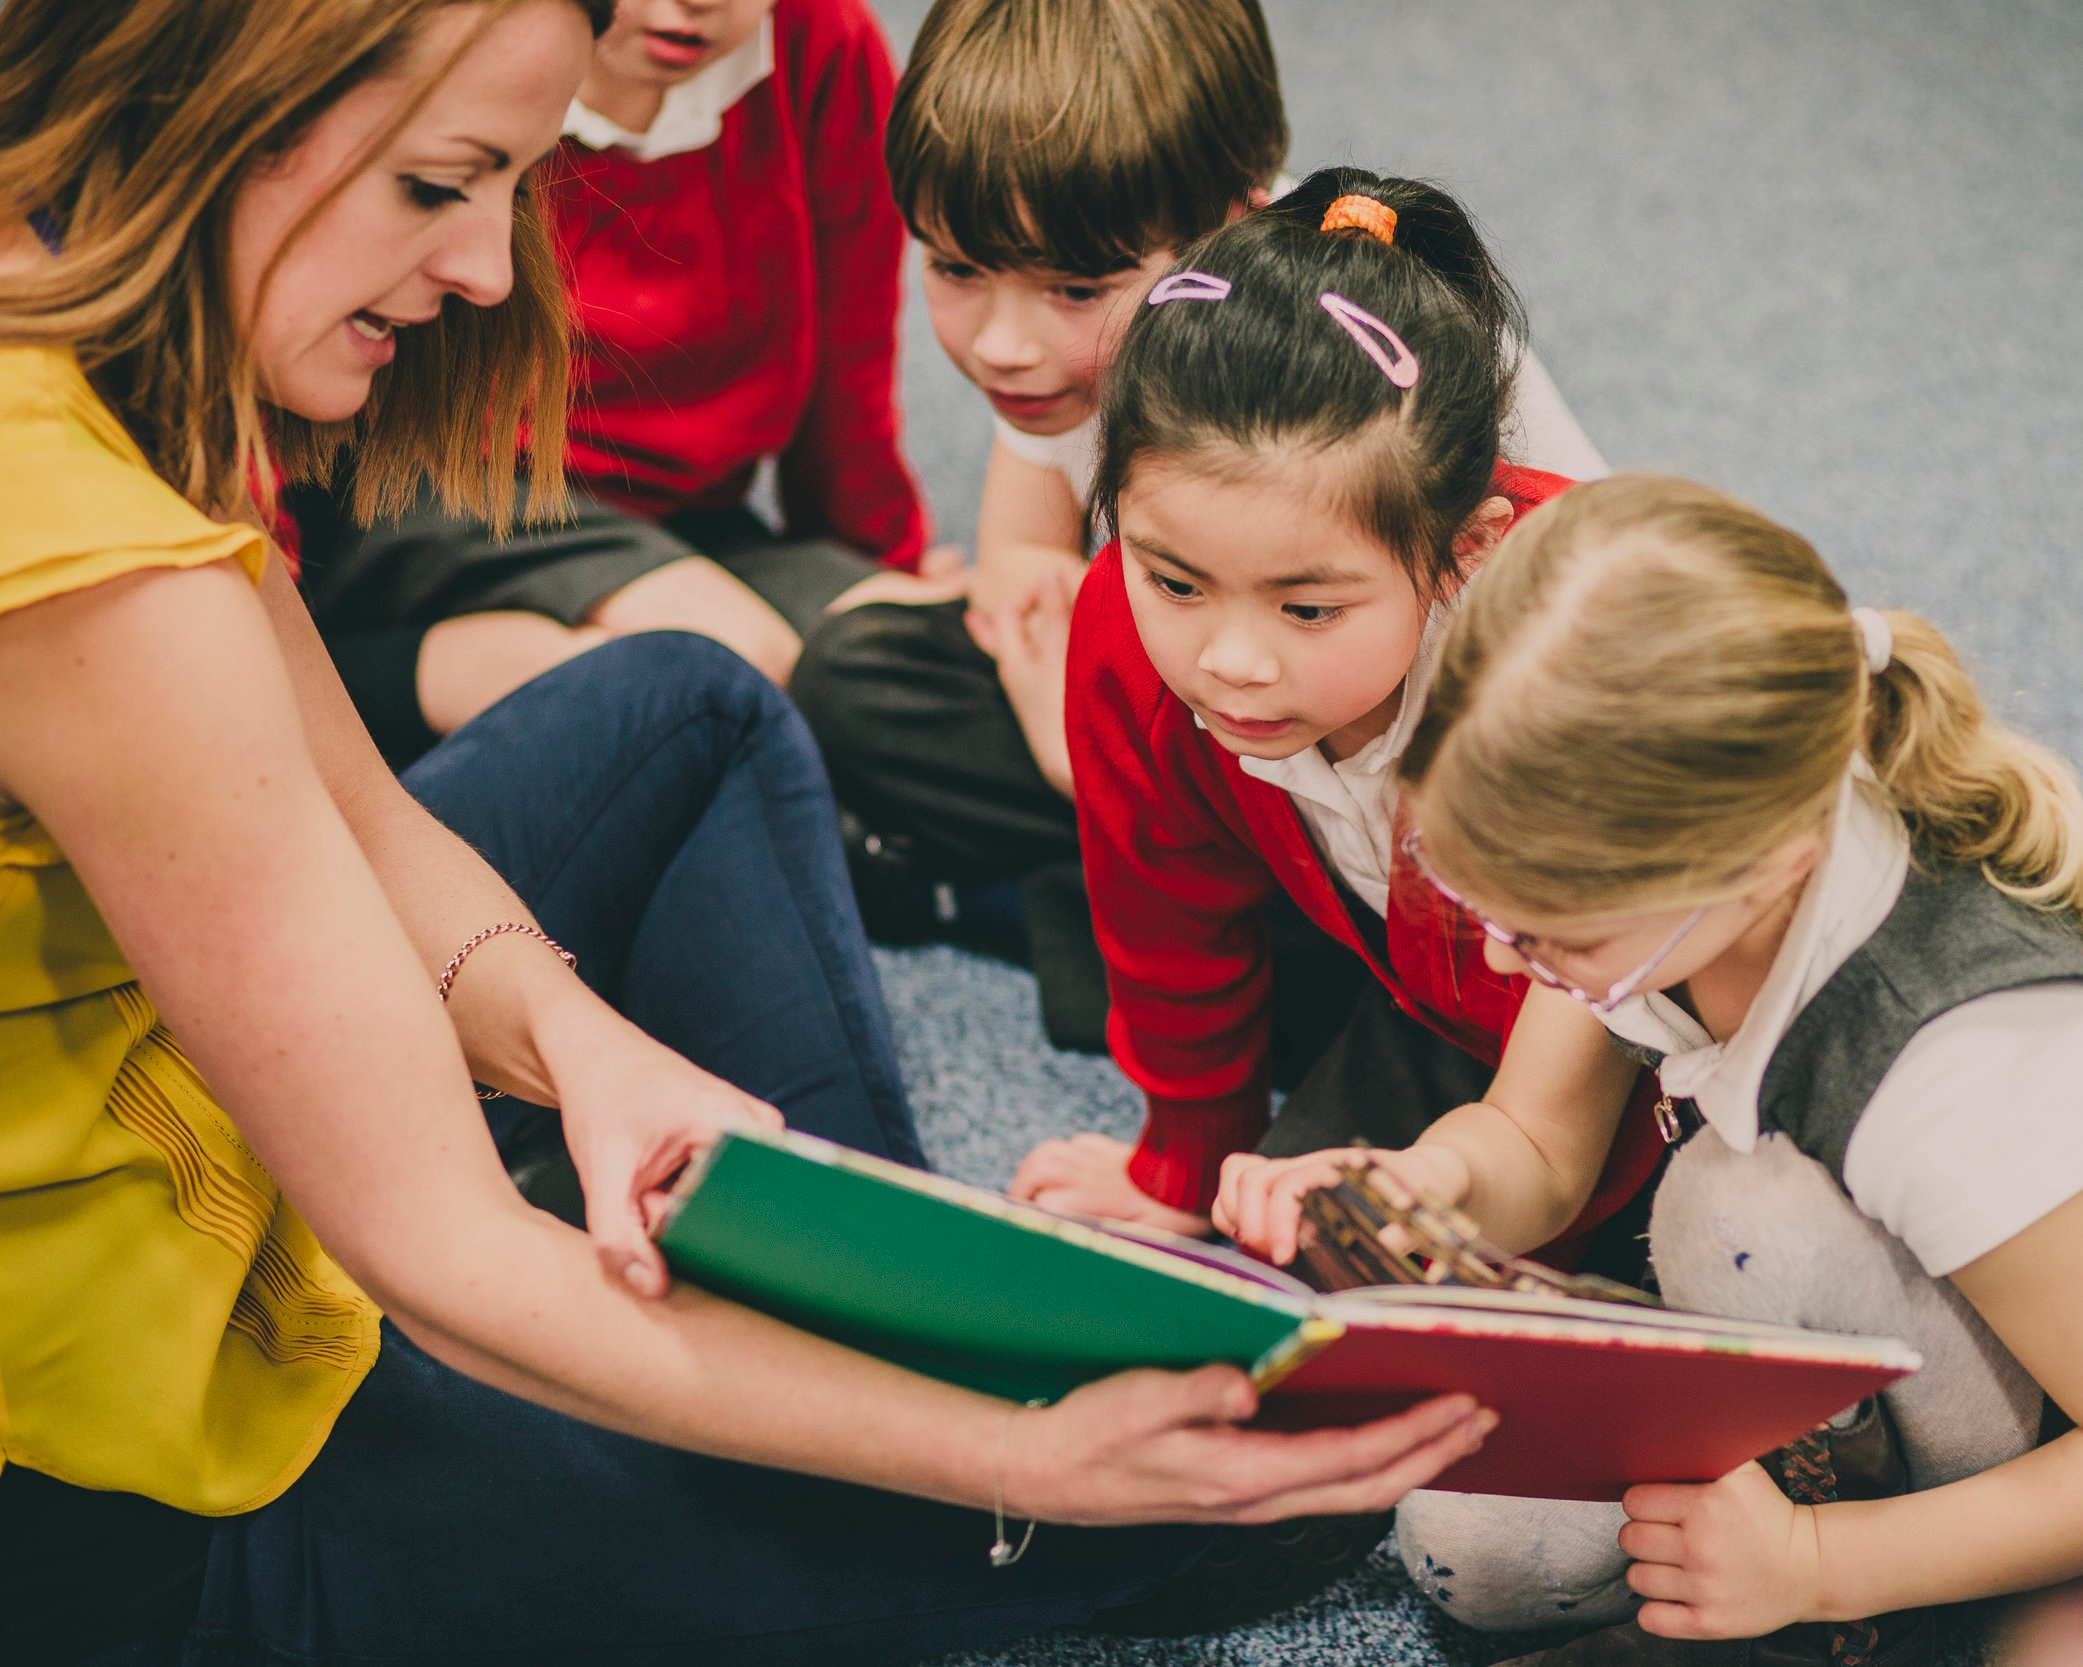 Creating a healthy SRE classroom culture - As an SRE teacher, it is important to foster a classroom culture built on respect and community, to encourage the students to engage deeply with God's word